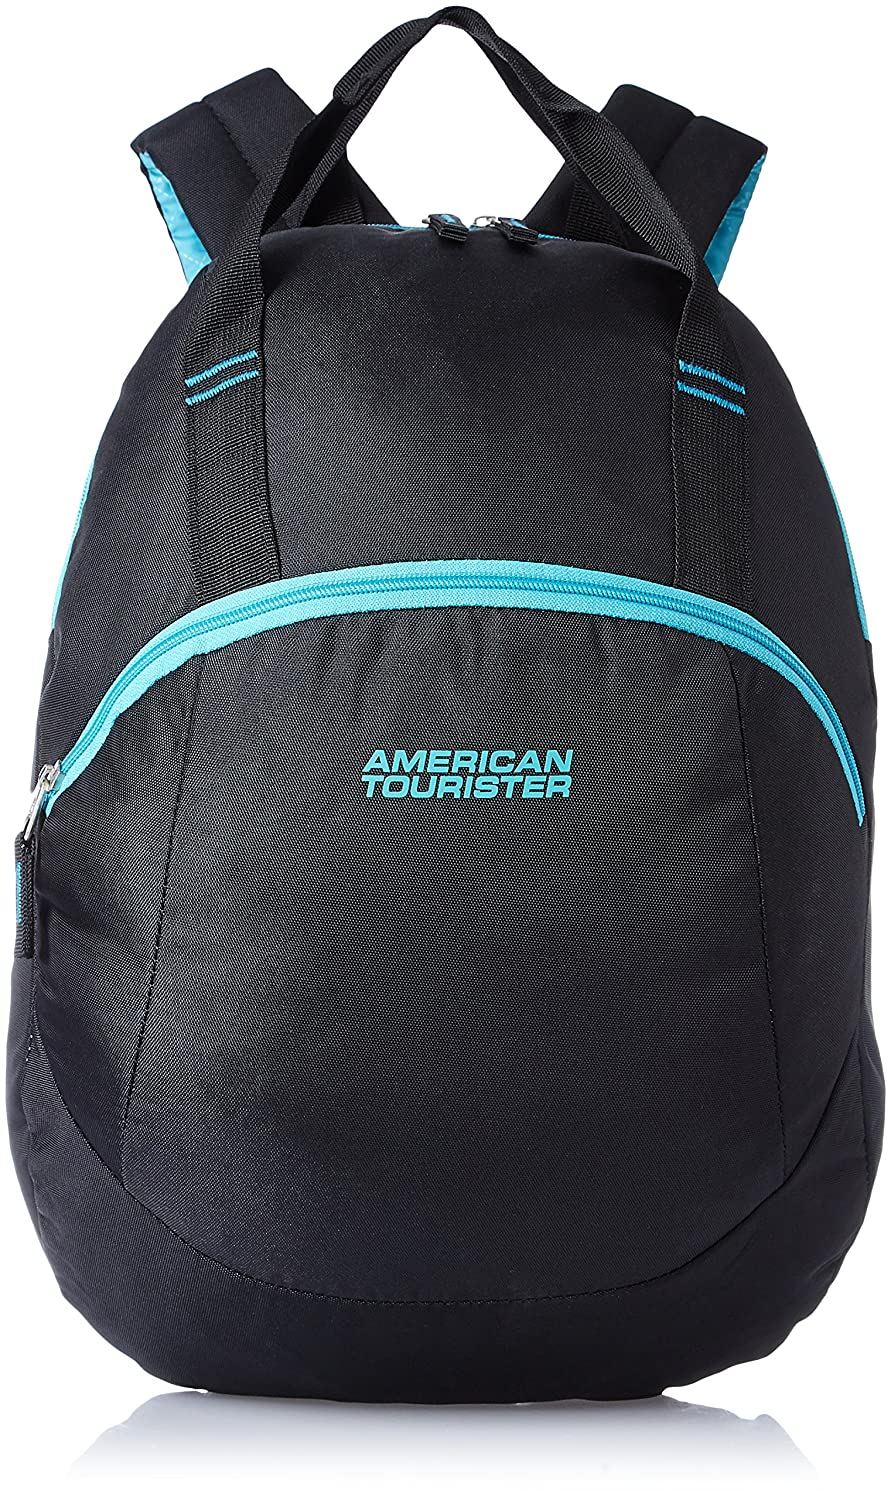 American Tourister Flint Backpack low price